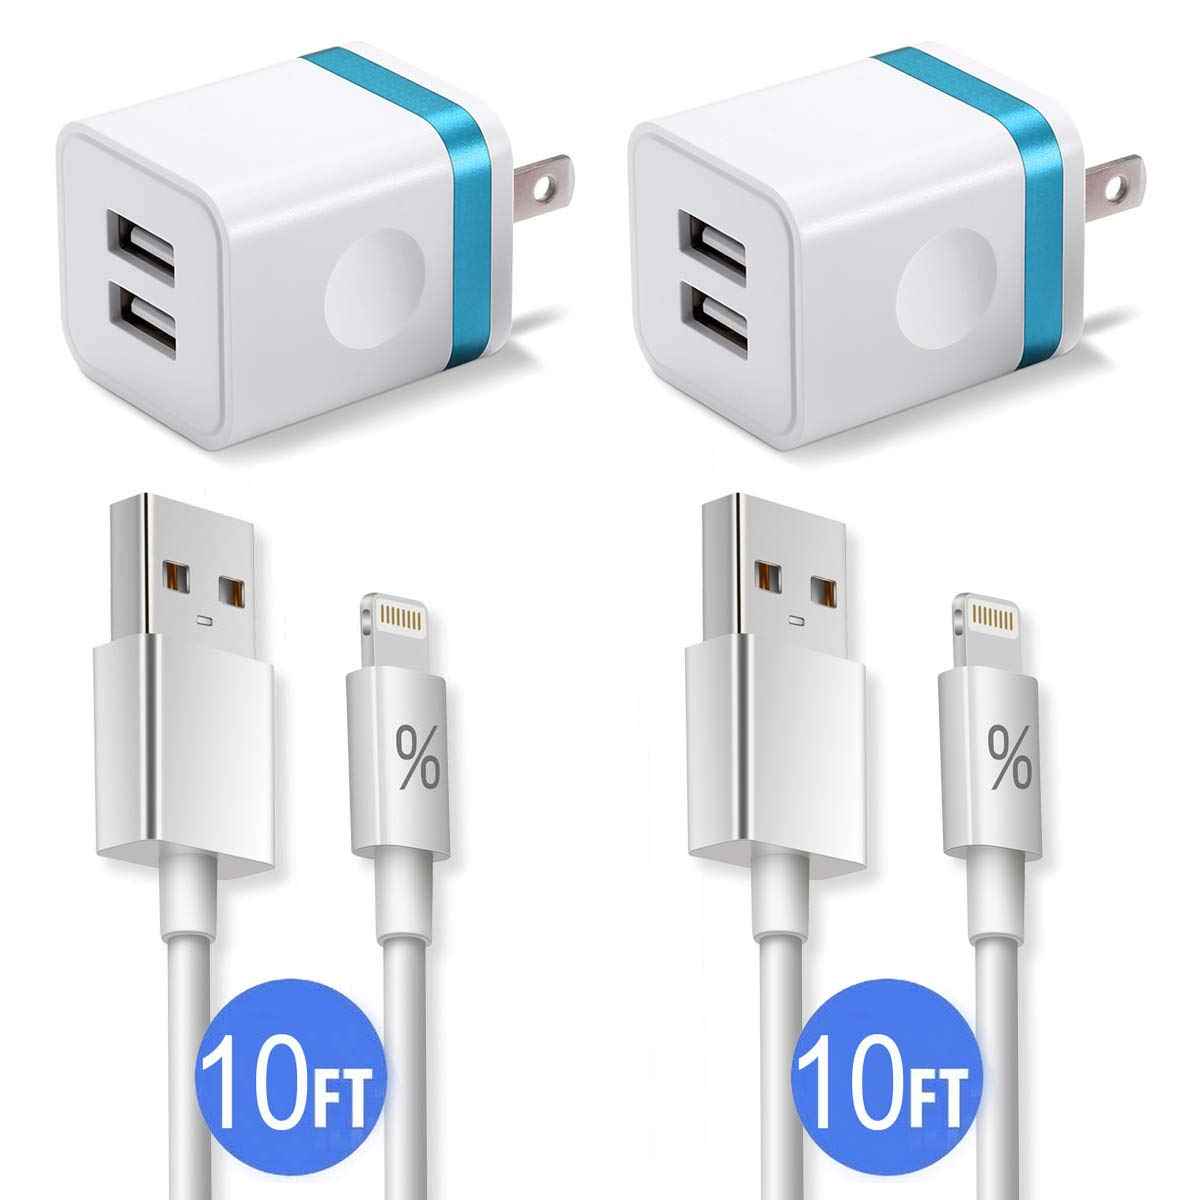 Phone Charger 10ft with Plug (4-in-1), FIMARR Dual USB Wall Charger Adapter Block with 2-Pack Charging Cable 10-Feet Compatible with Phone XS/Max/XR/X 8/7/6 Plus SE/5S/5C (UL Certified) by FIMARR